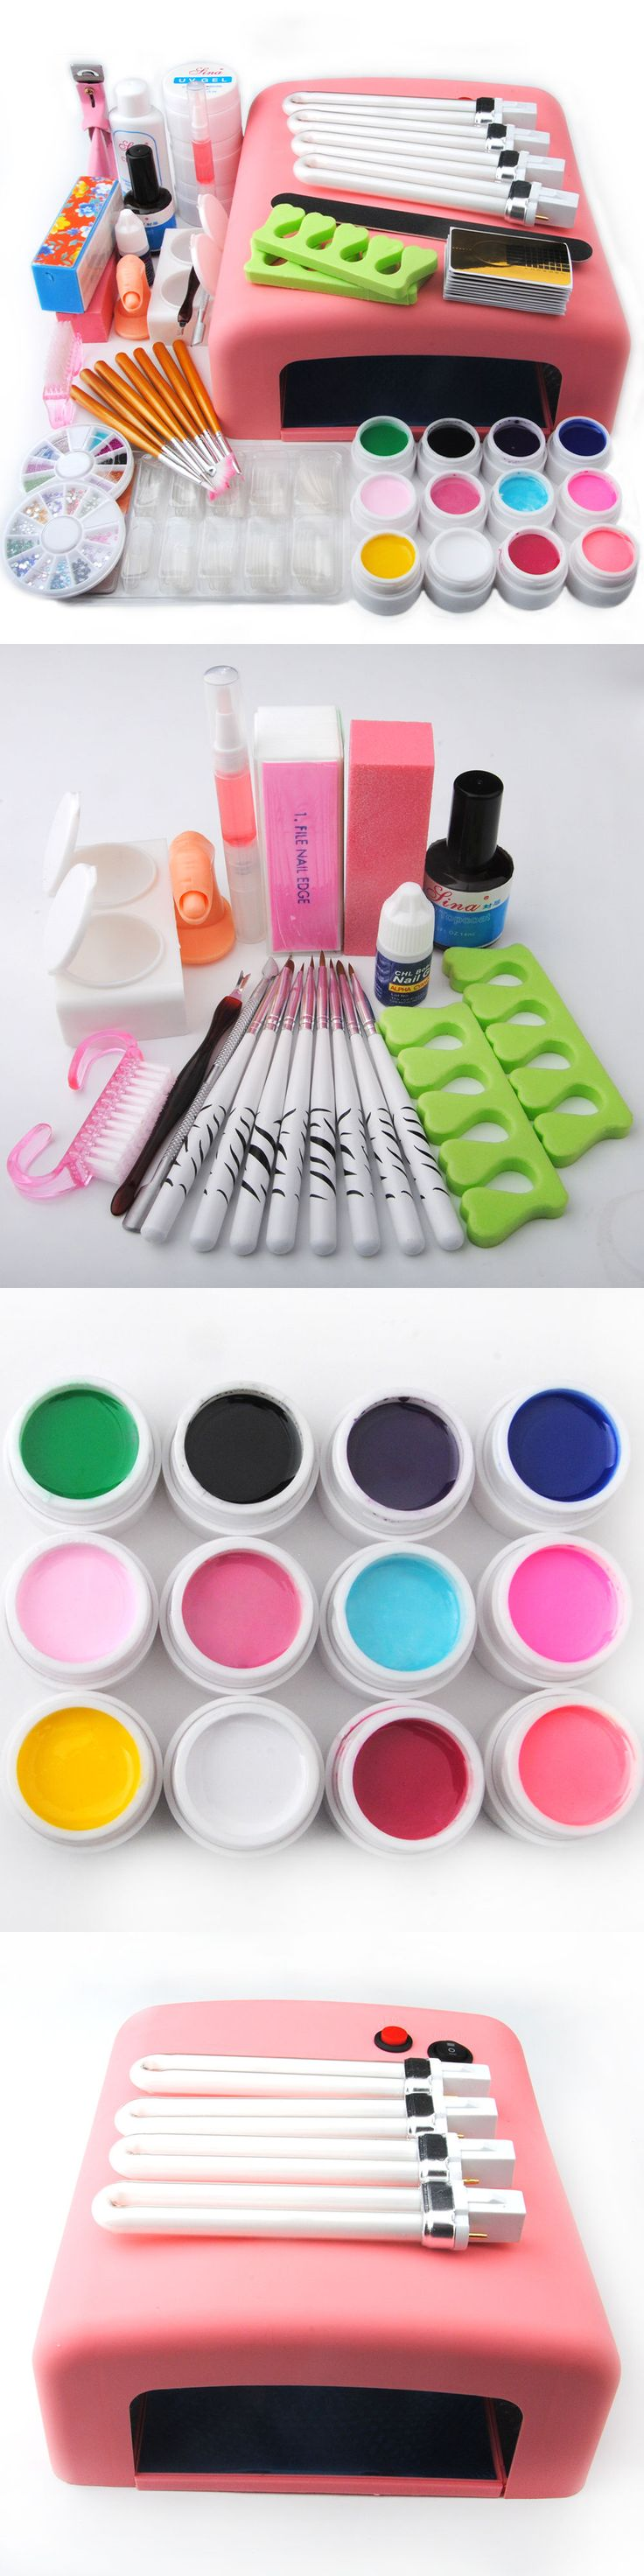 Nail Art Accessories: Nail Art Tools Set 36W Uv Lamp Dryer +12 Color Uv Gel Nails Tips Polish Kit -> BUY IT NOW ONLY: $34.34 on eBay!